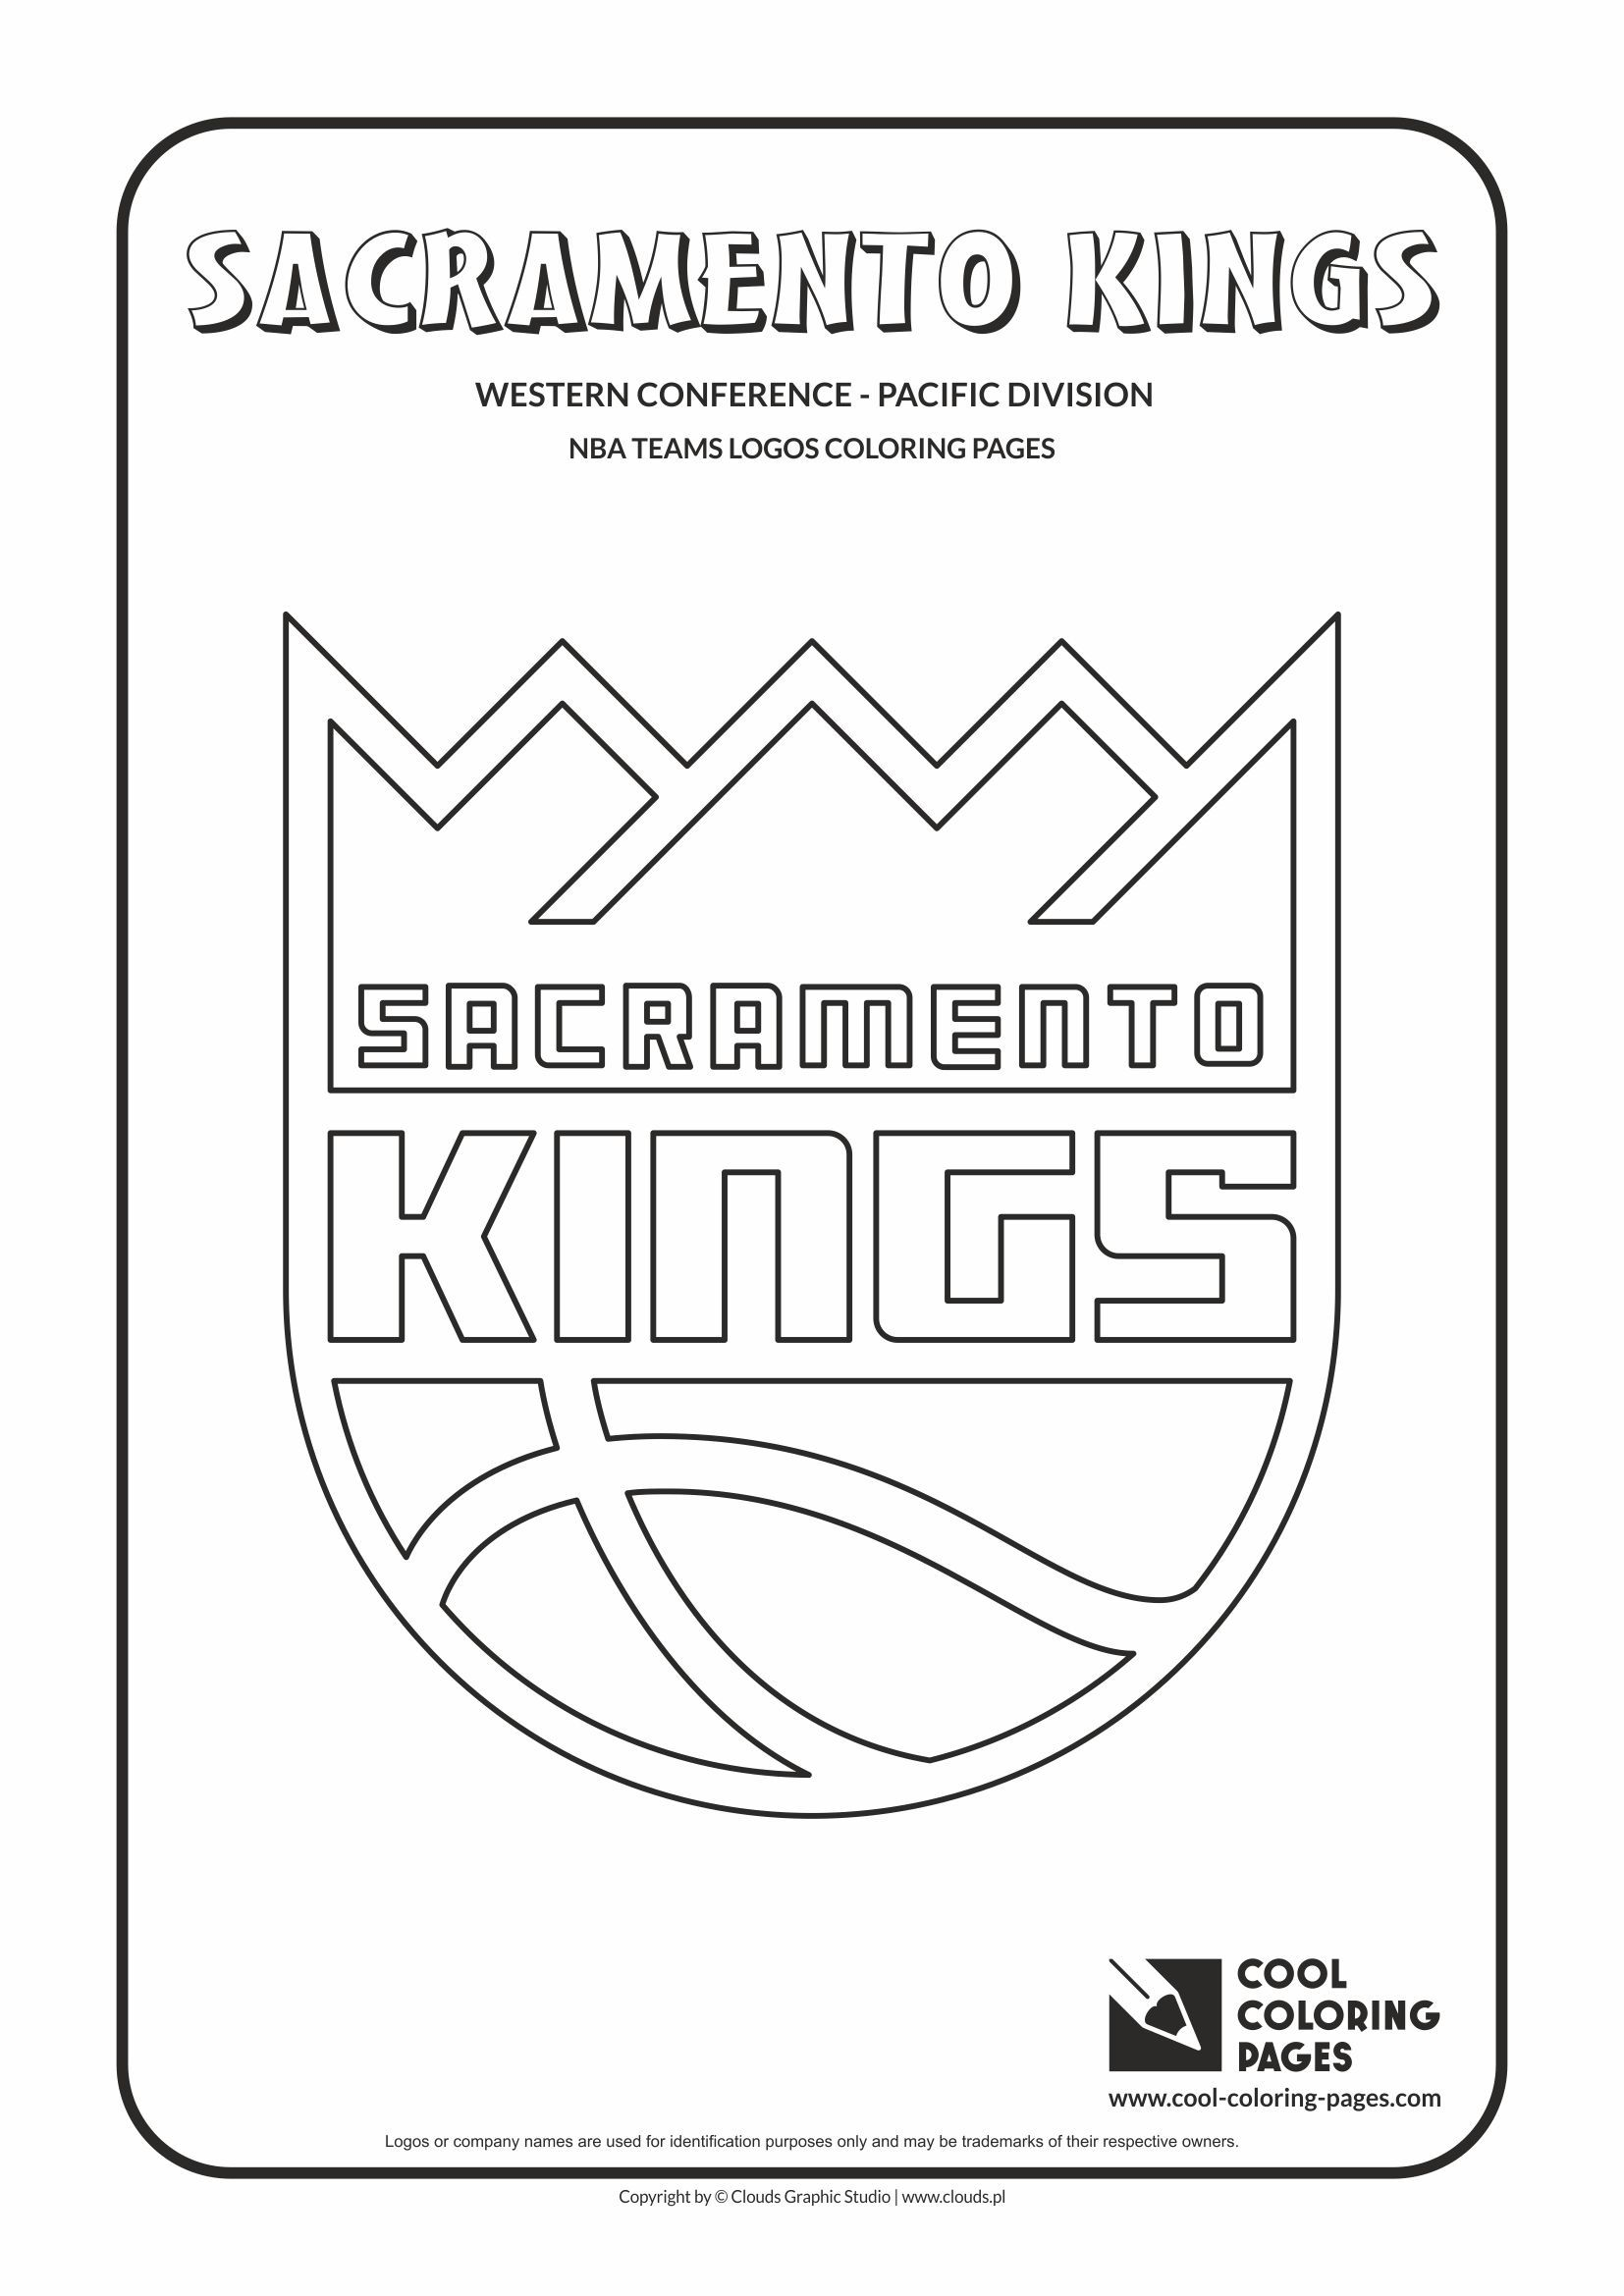 Sacramento Kings Nba Basketball Teams Logos Coloring Pages